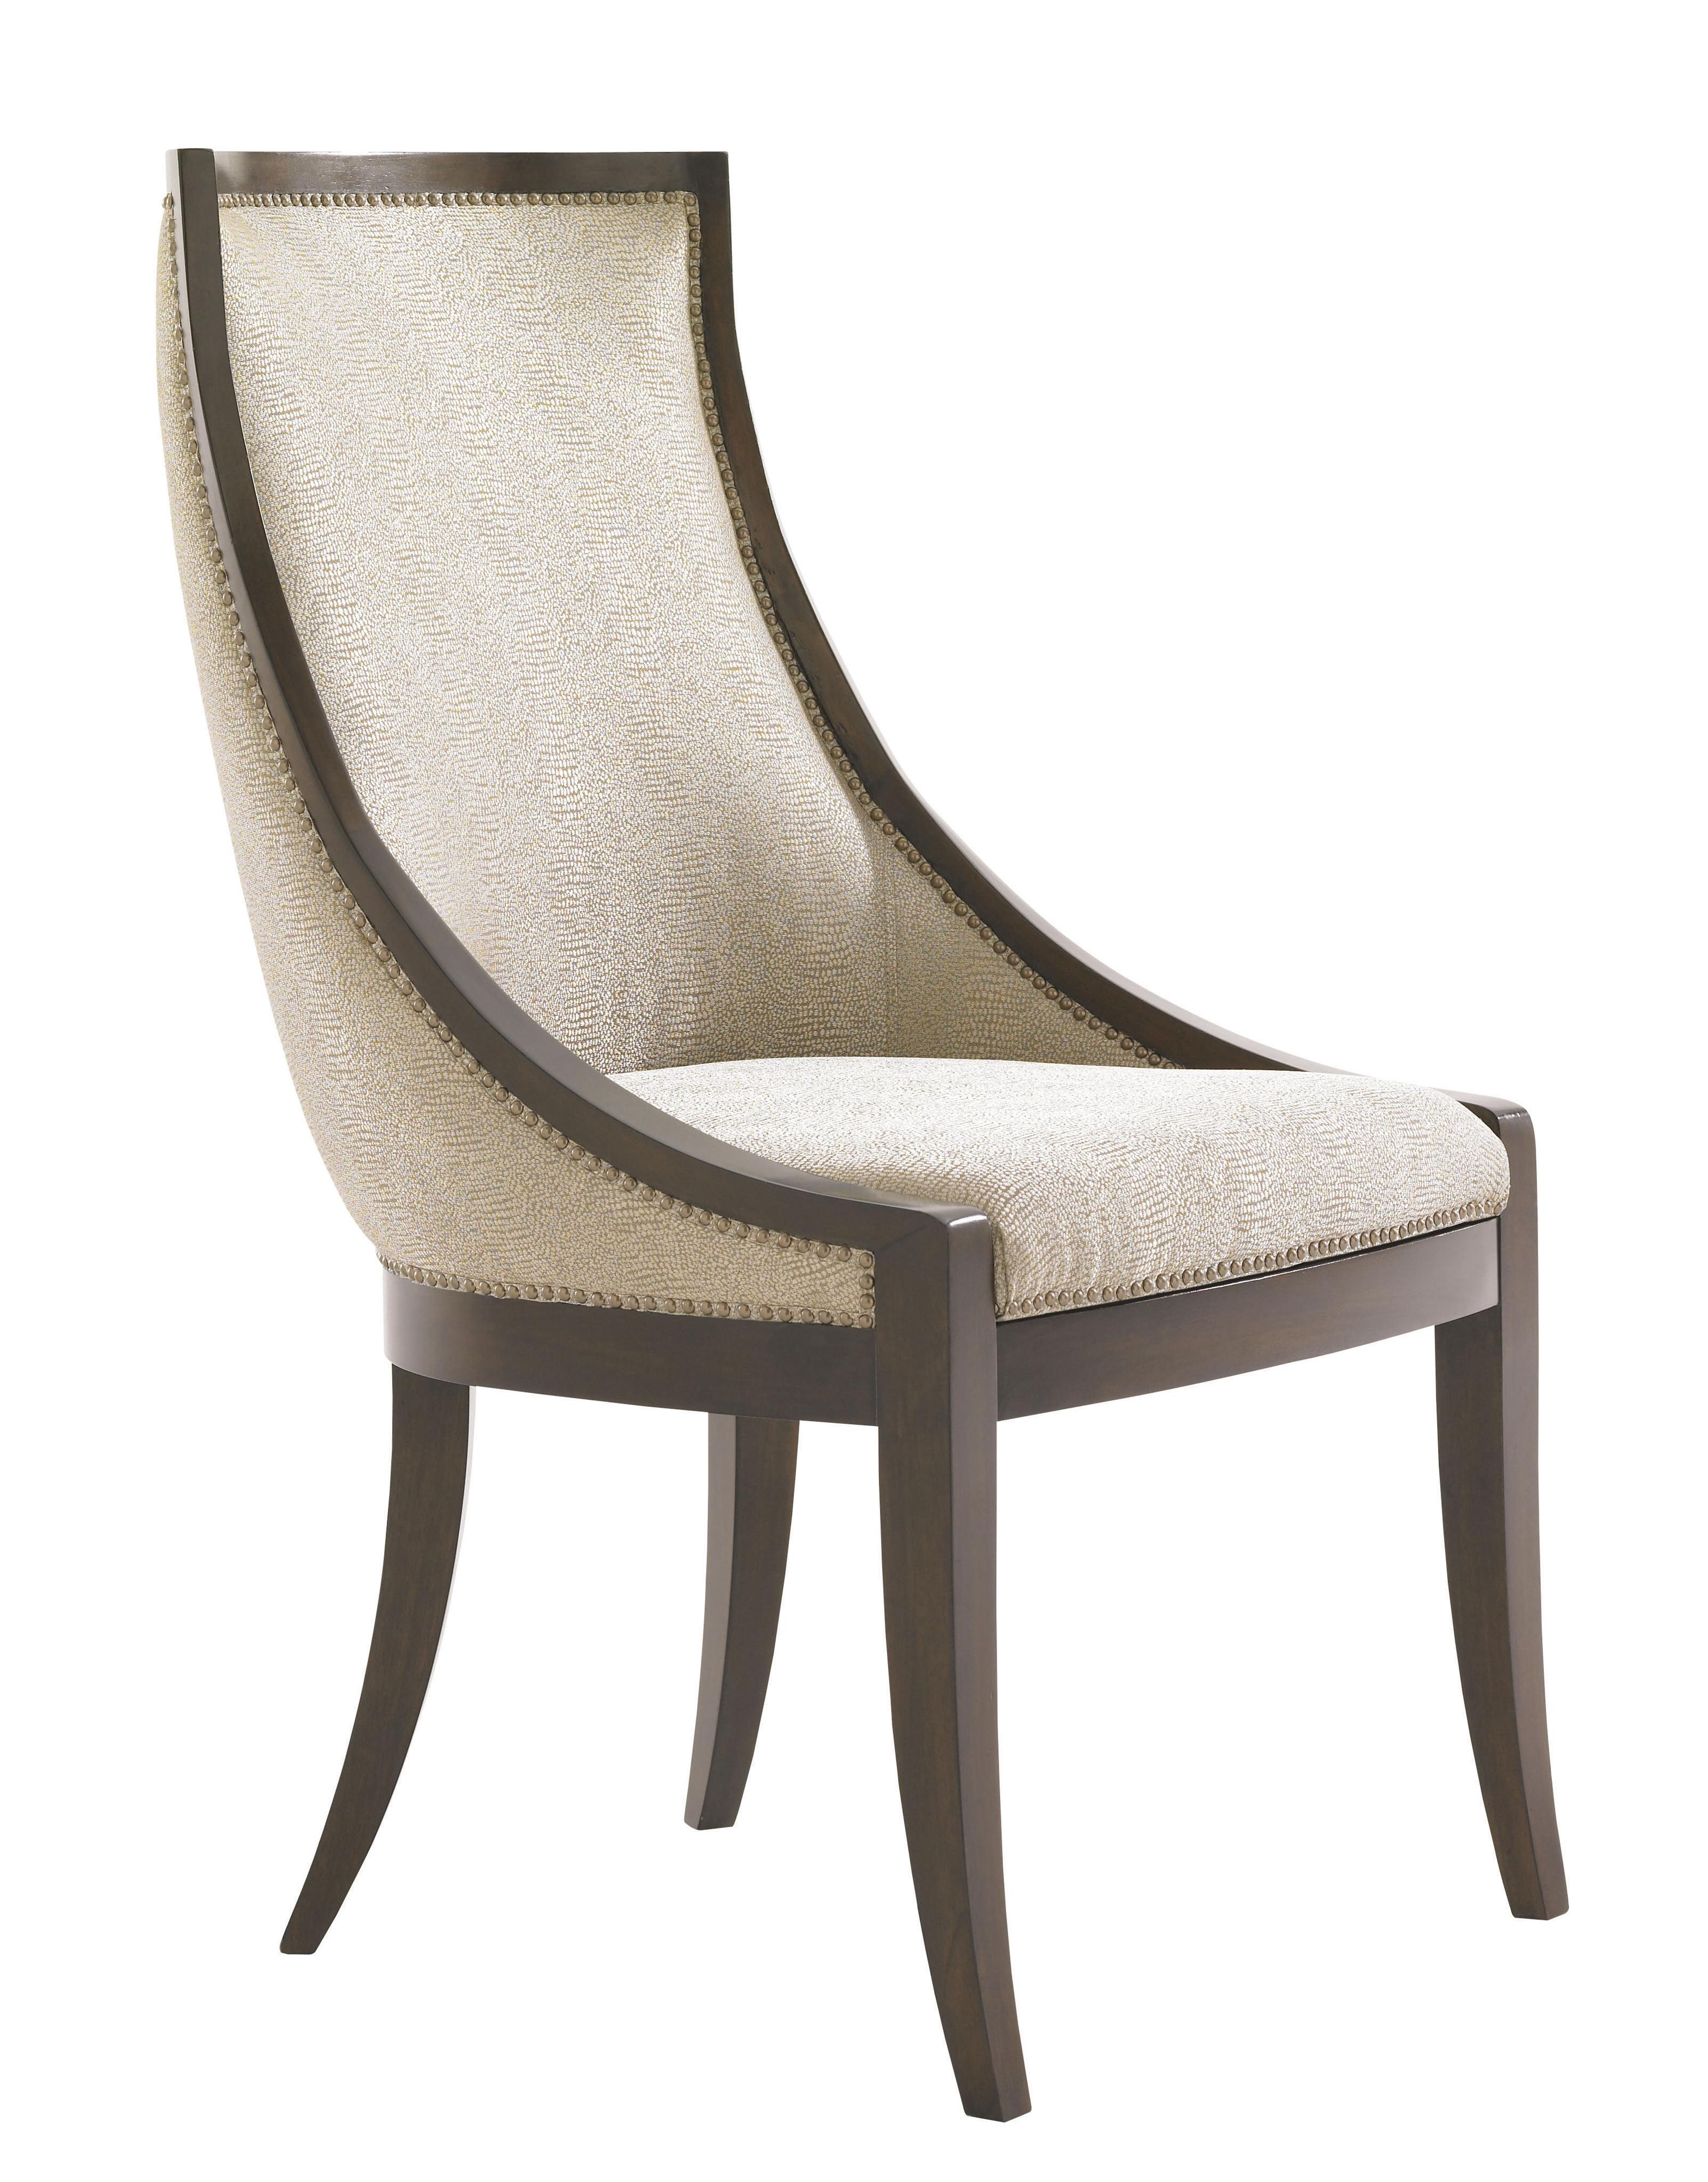 Tower Place Talbot Quickship Host Chair by Lexington at Fisher Home Furnishings